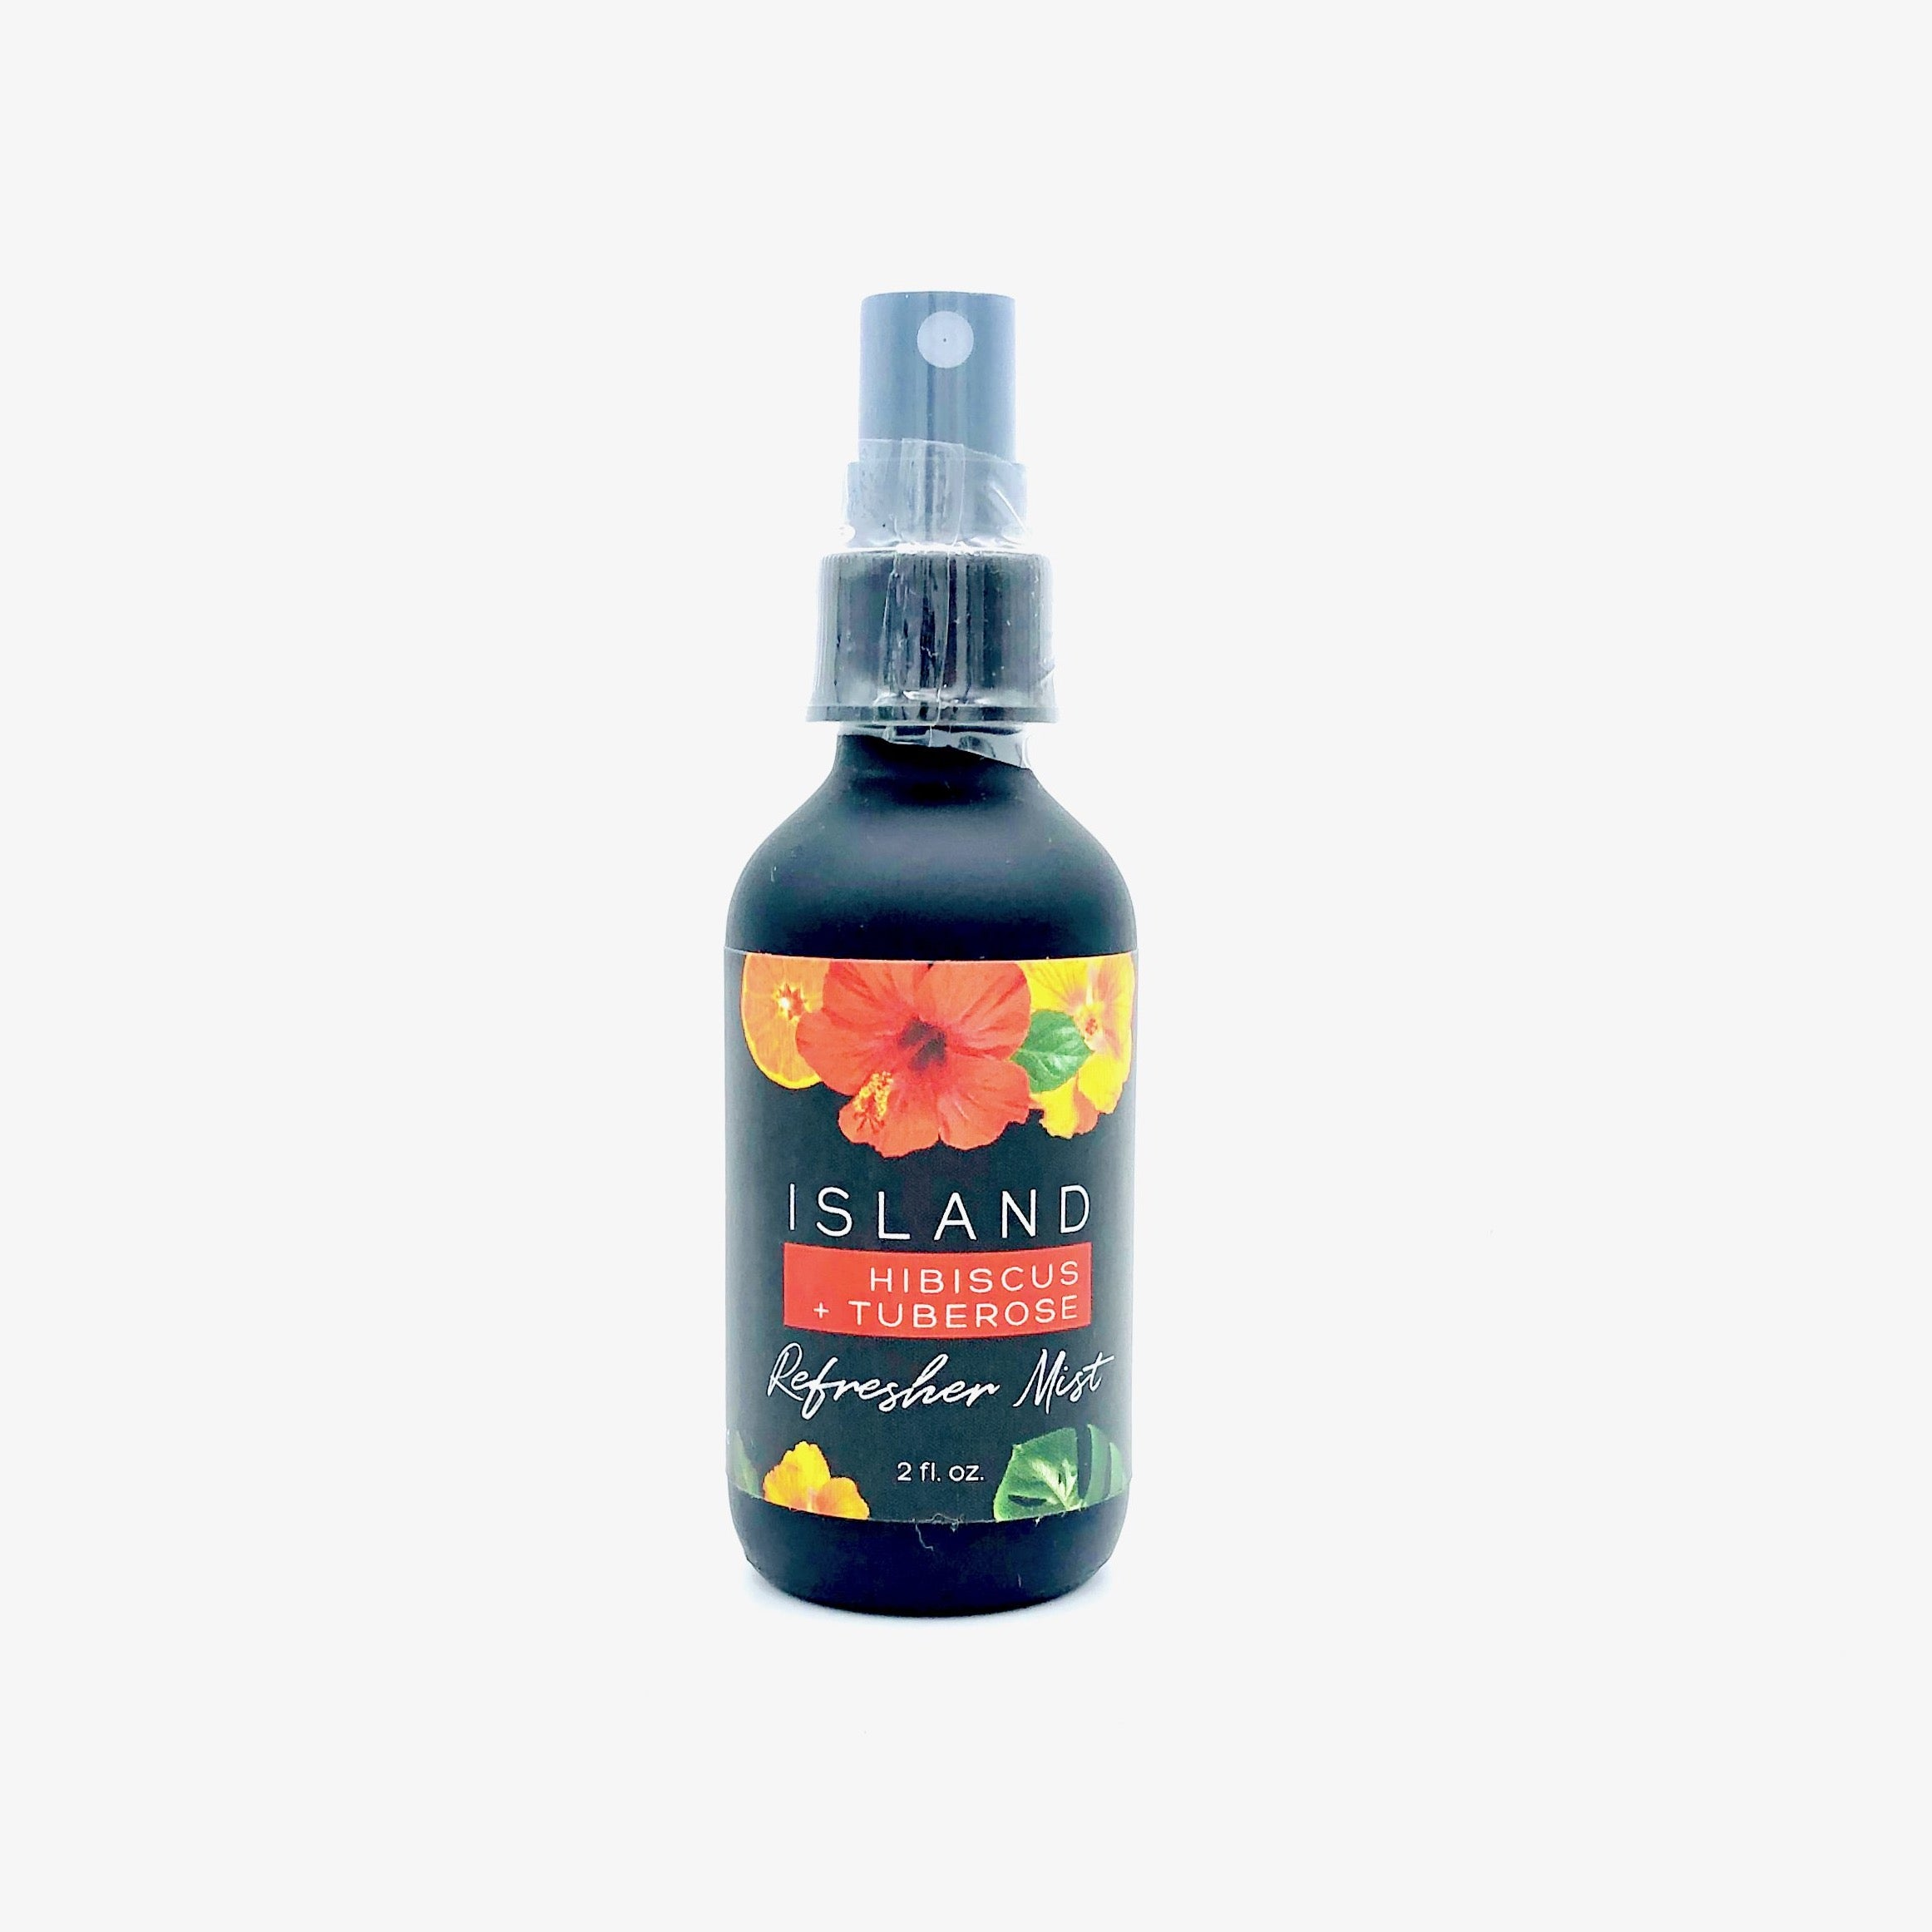 Artful Scents Island - Hibiscus Tuberose refresher mist